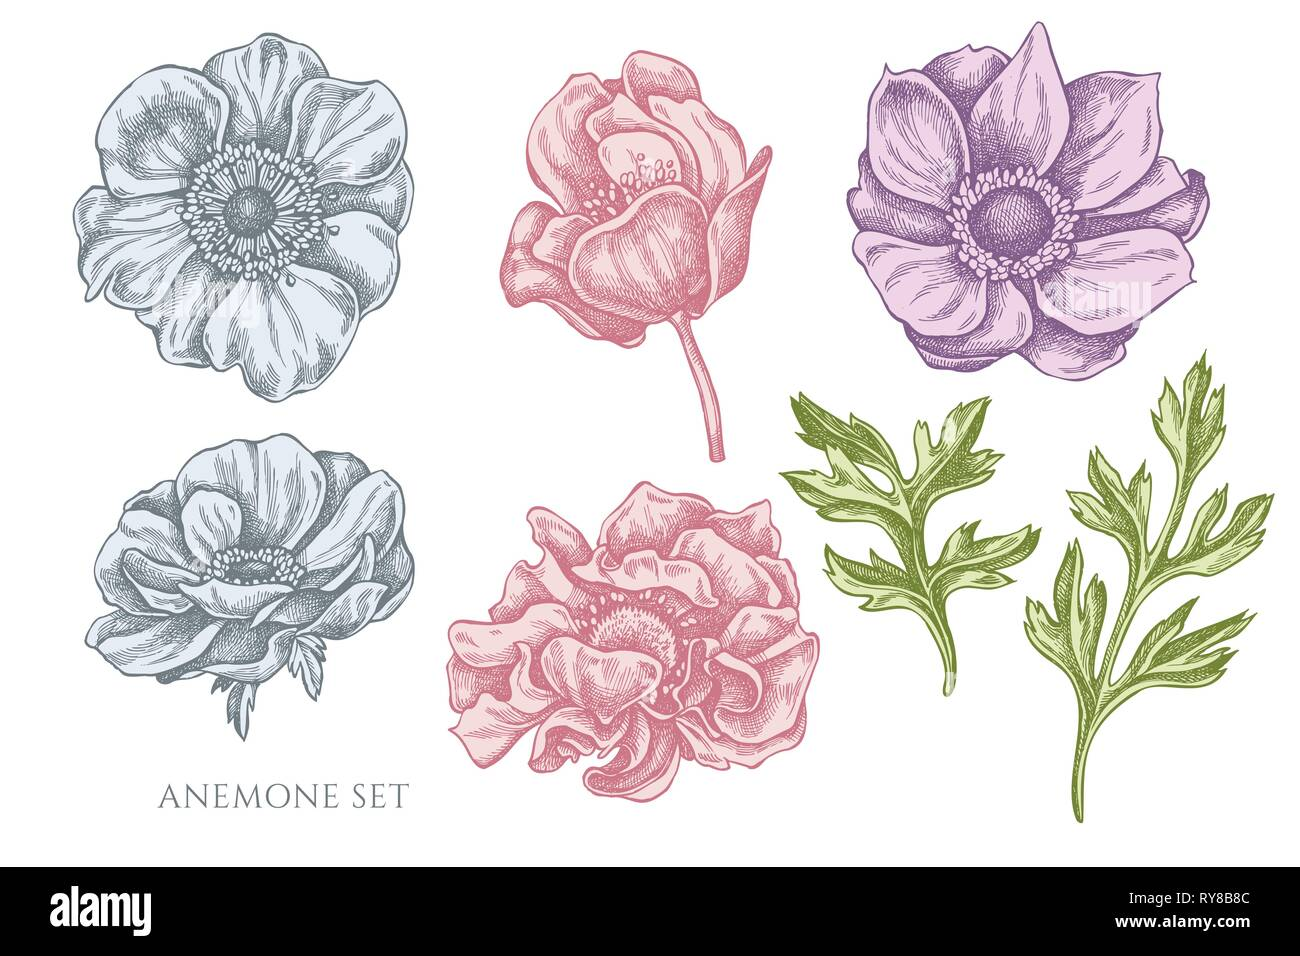 Vector collection of hand drawn pastel anemone - Stock Vector